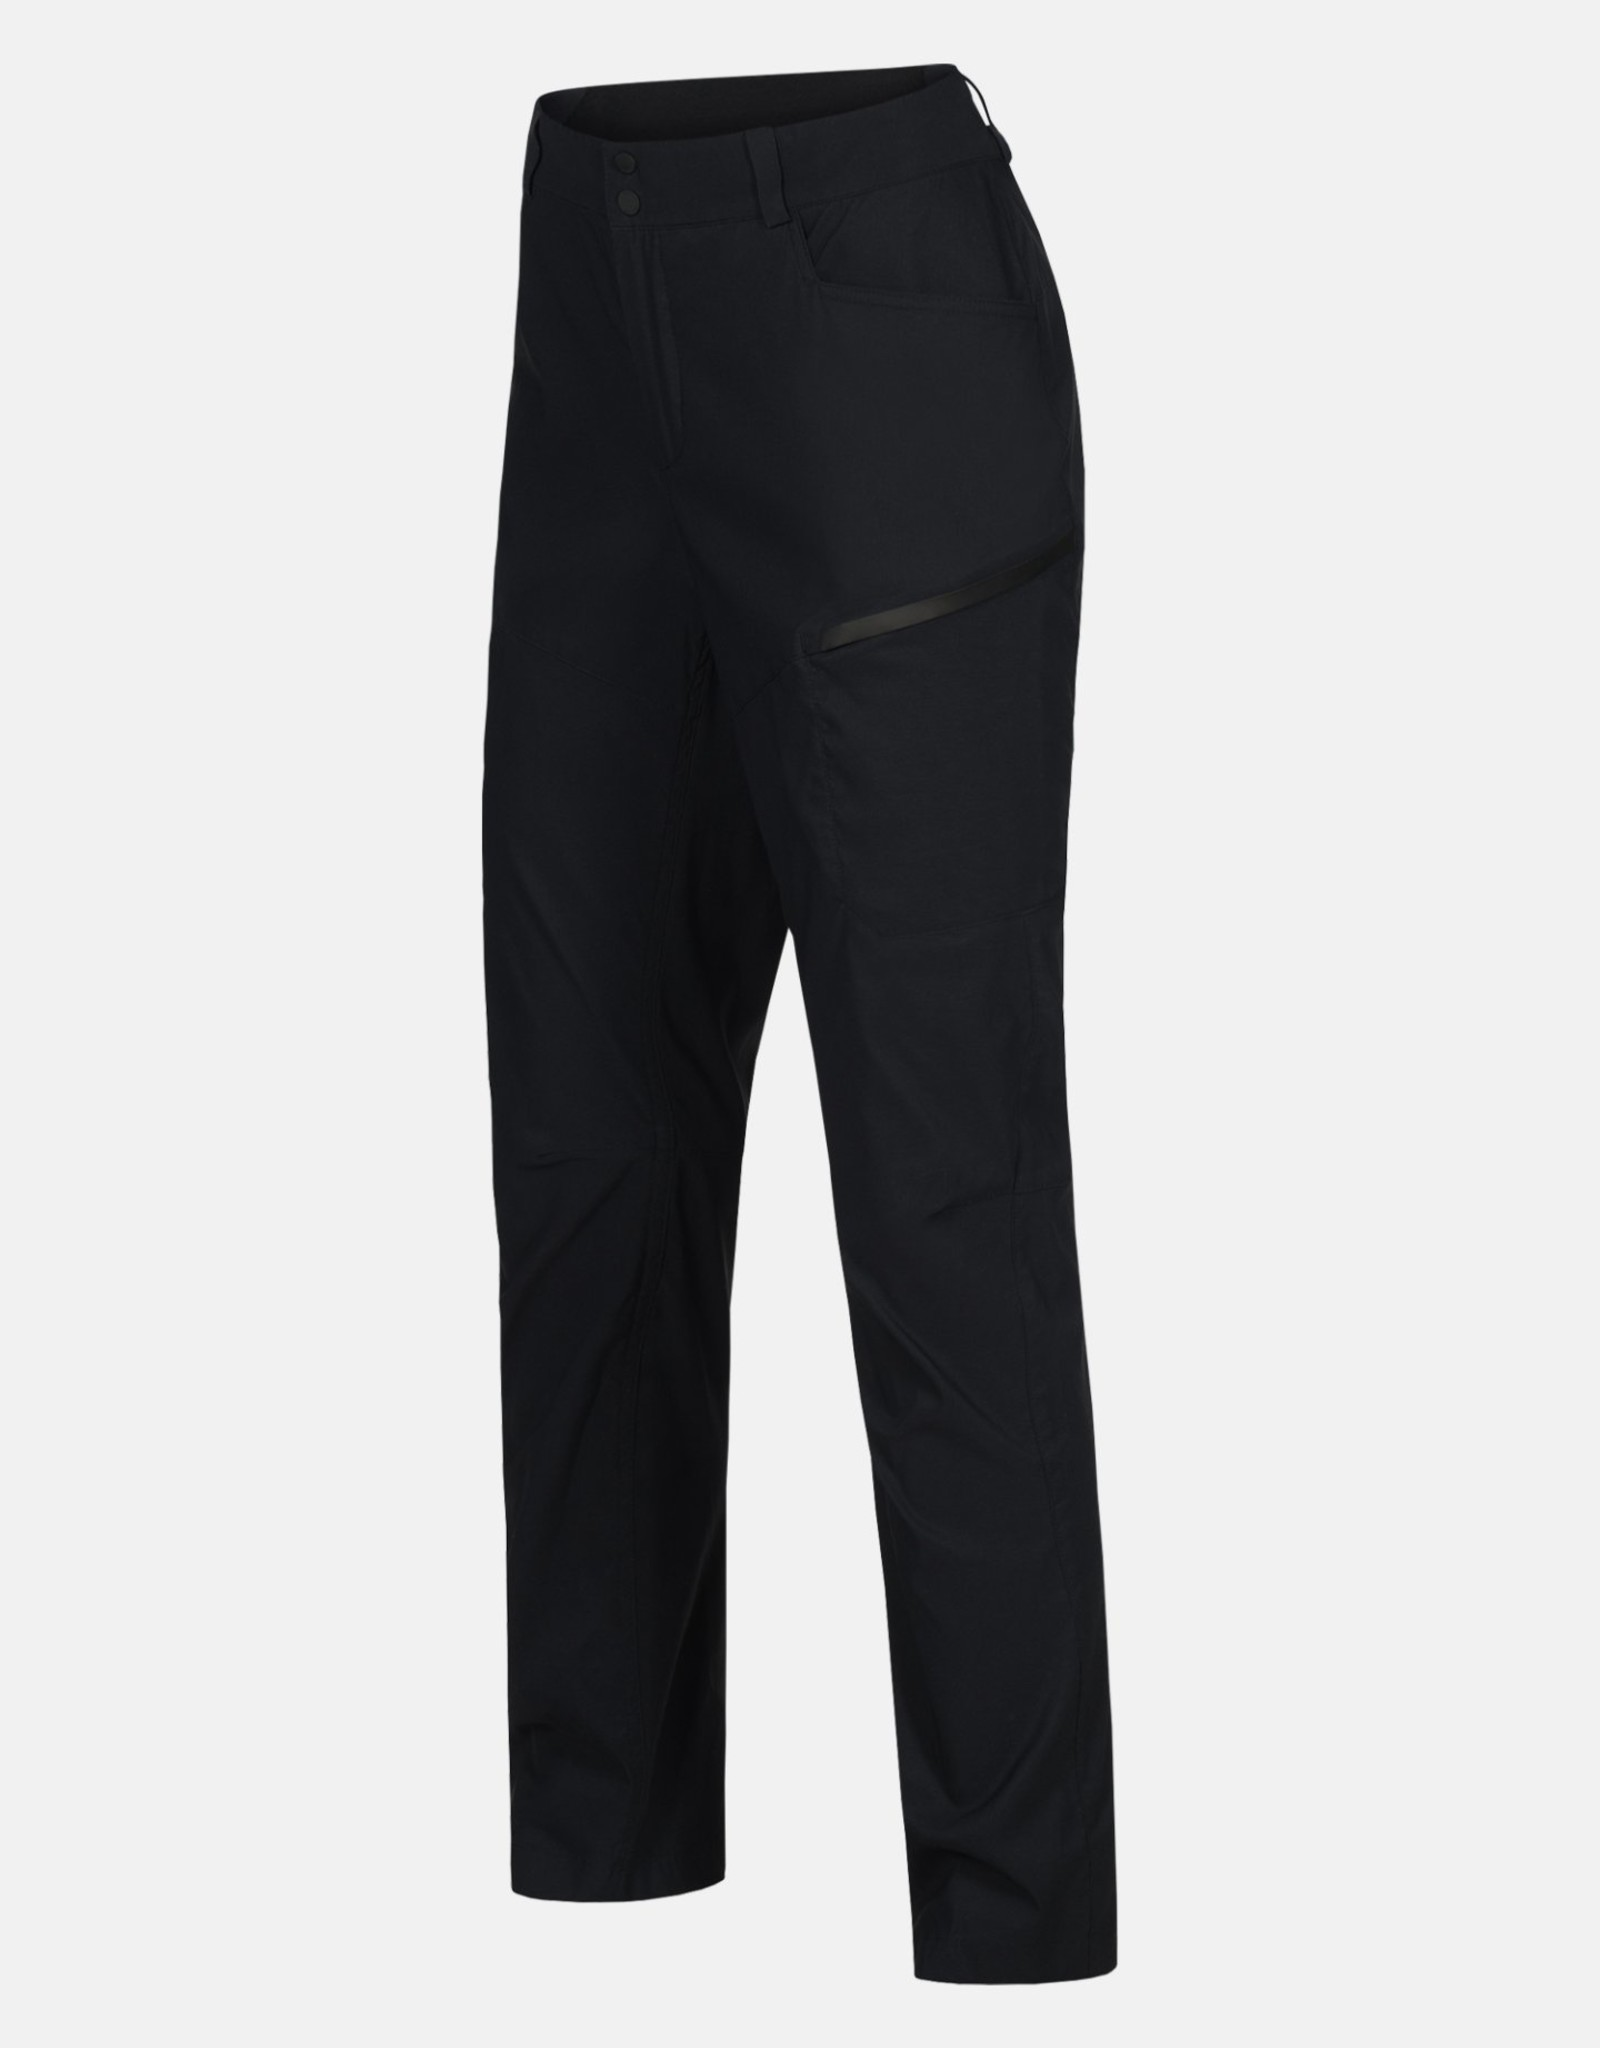 Peak Performance Peak Performance Women's Iconiq Cargo Pant - S2020